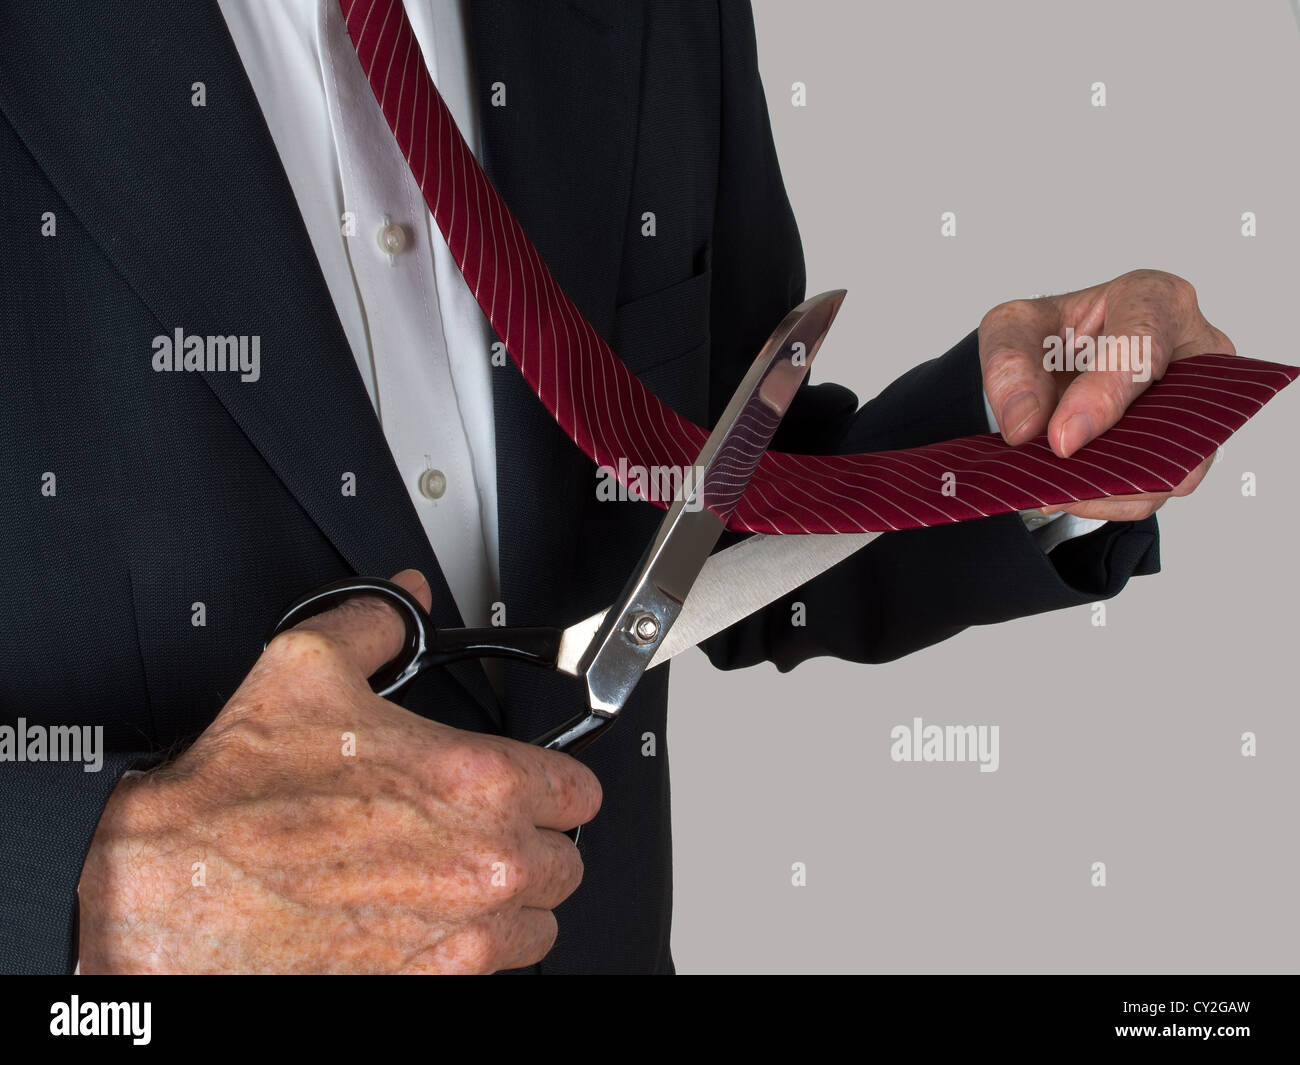 Quitting business - man cutting own tie - Stock Image